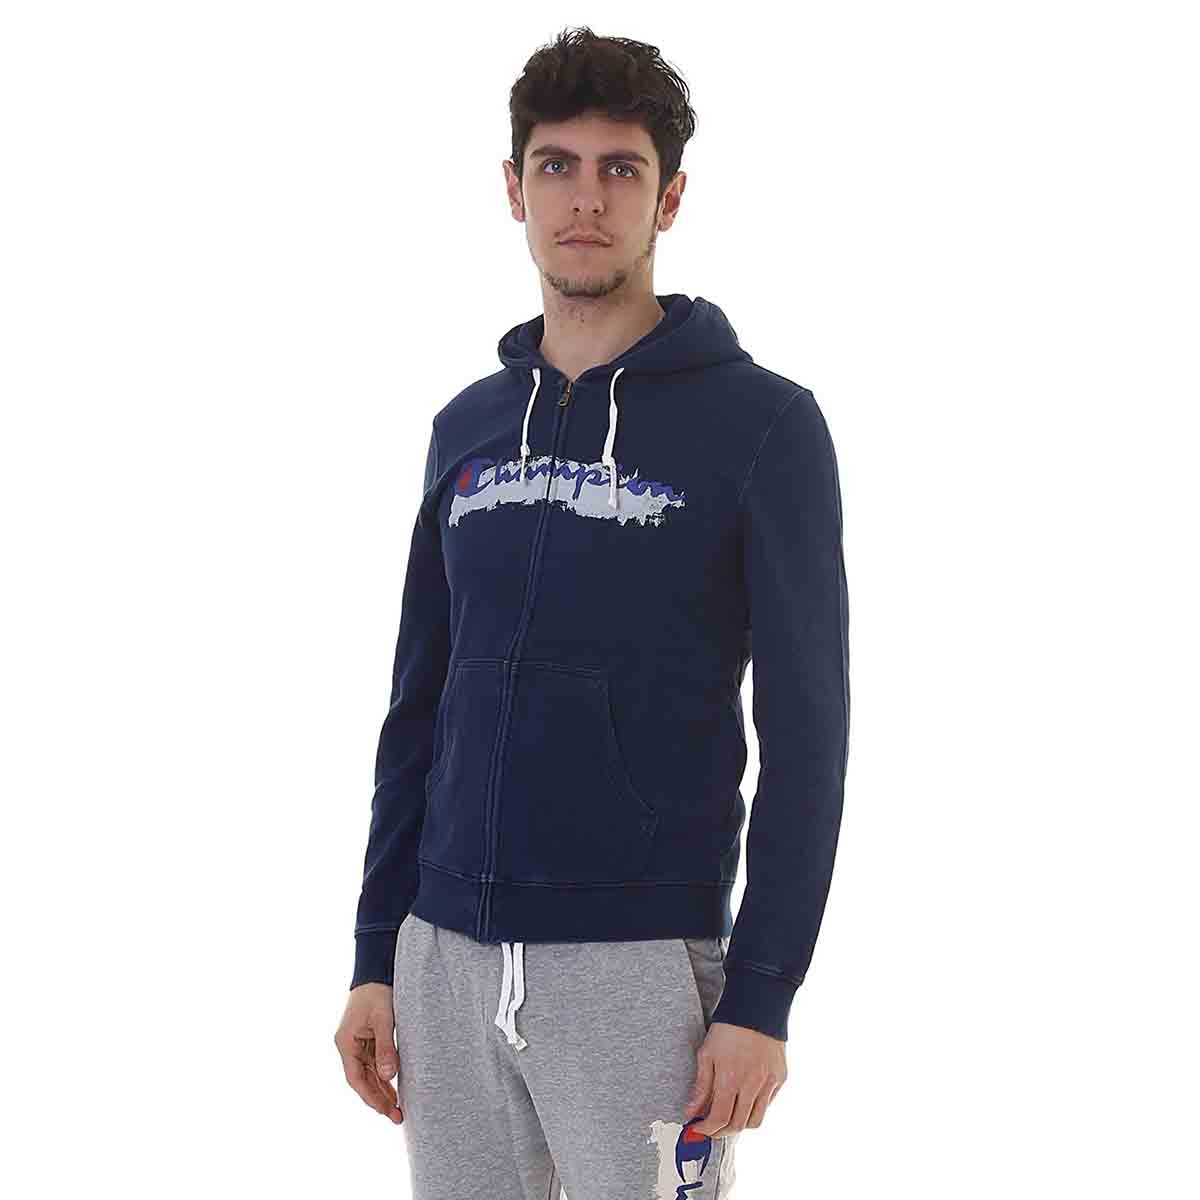 Champion Herren Sweatjacke Hooded Full Zip blau